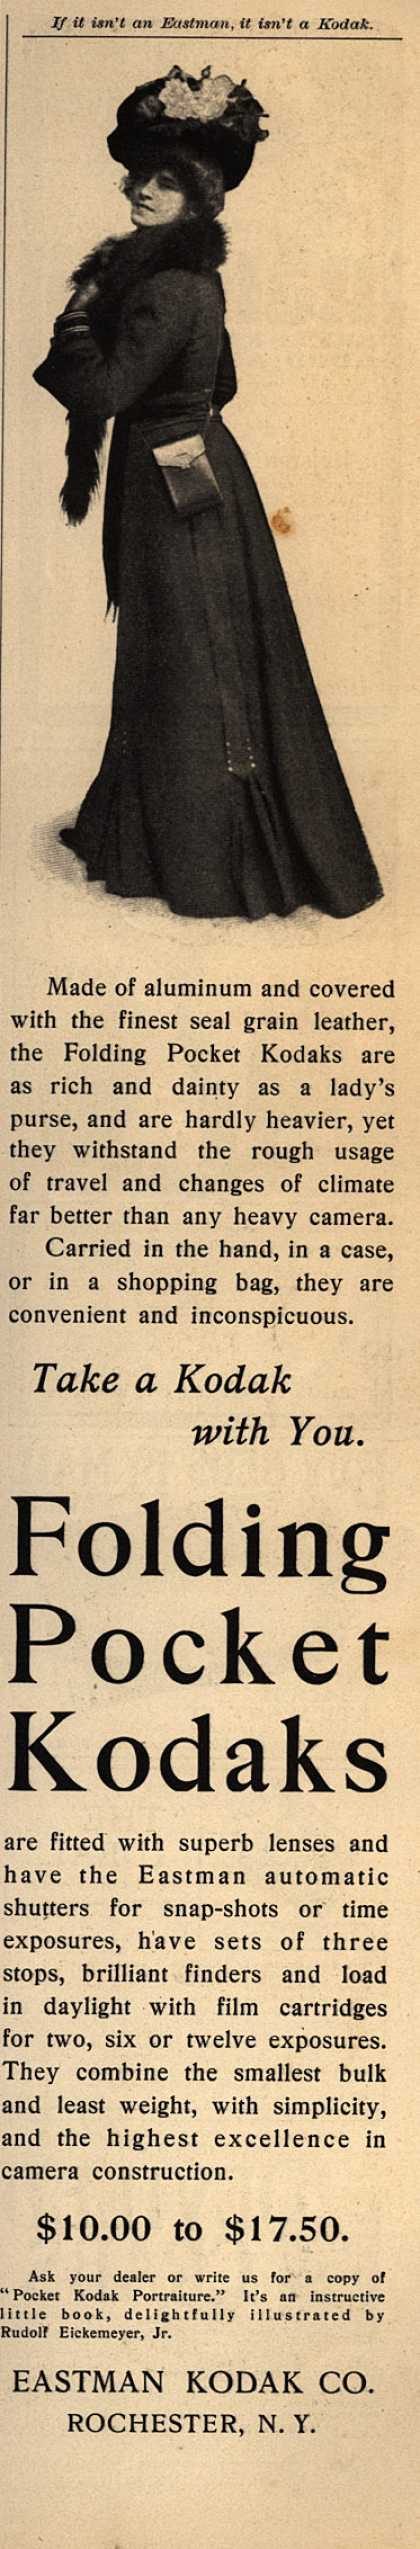 Kodak&#8217;s Folding Pocket cameras &#8211; Take a Kodak with You. Folding Pocket Kodaks (1901)